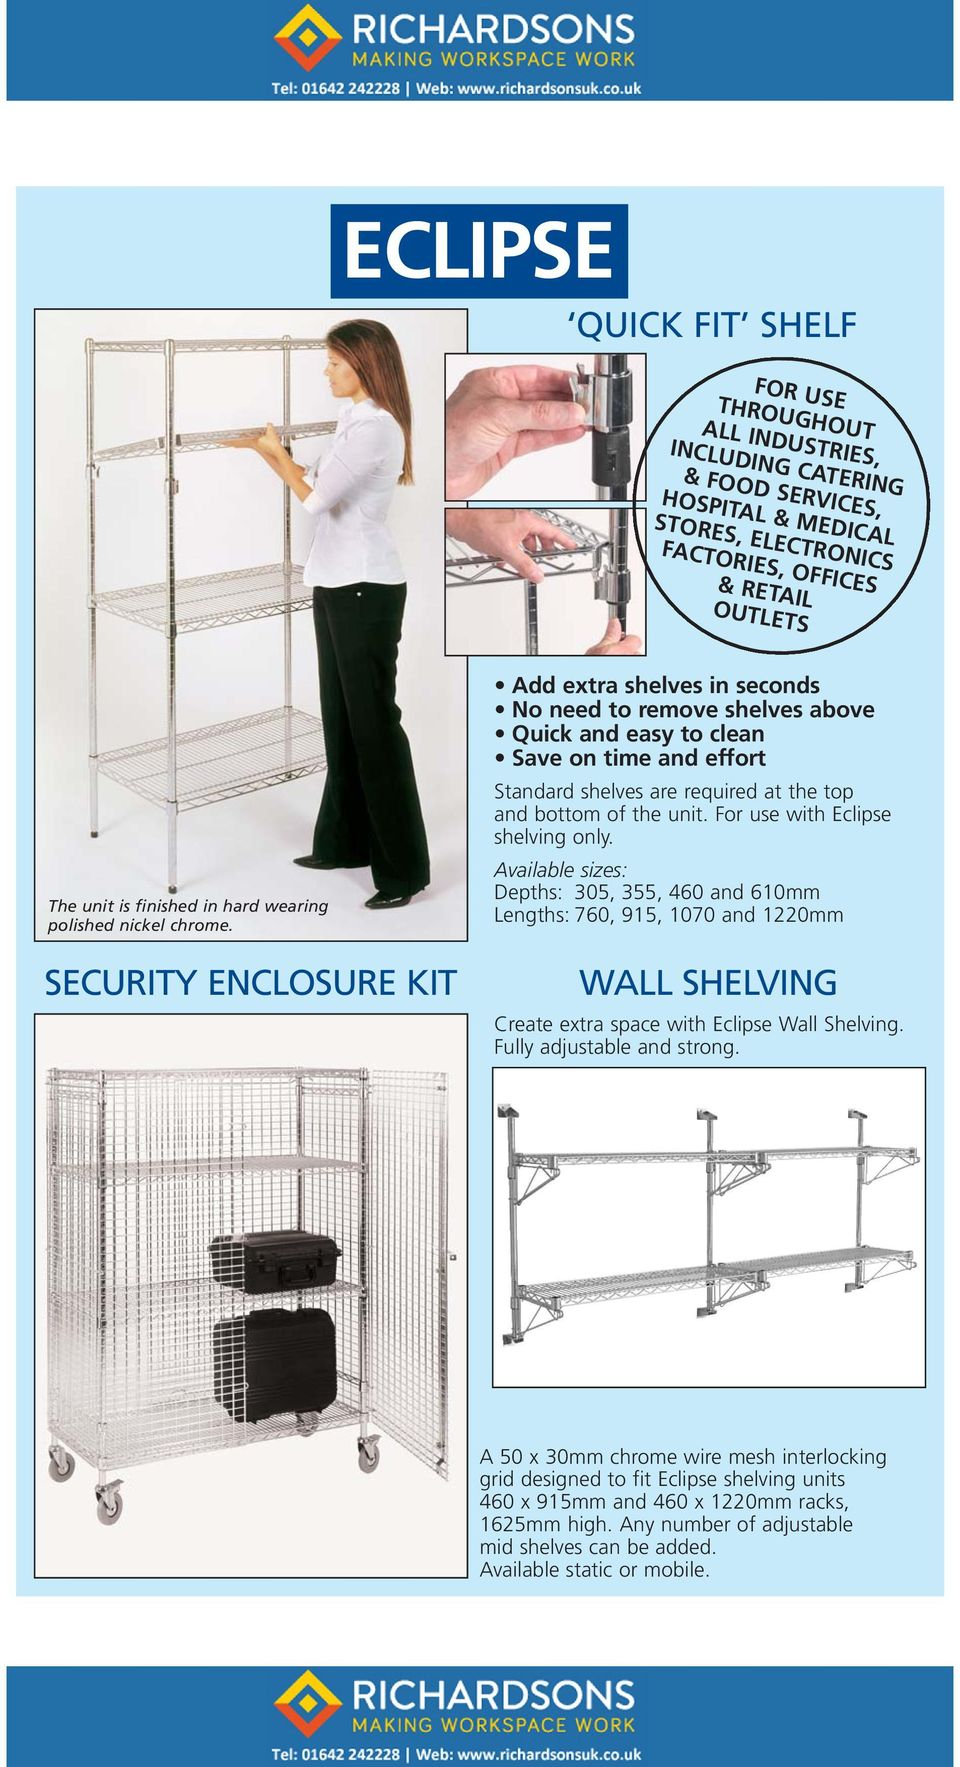 SECURITY ENCLOSURE KIT Add extra shelves in seconds No need to remove shelves above Quick and easy to clean Save on time and effort Standard shelves are required at the top and bottom of the unit.